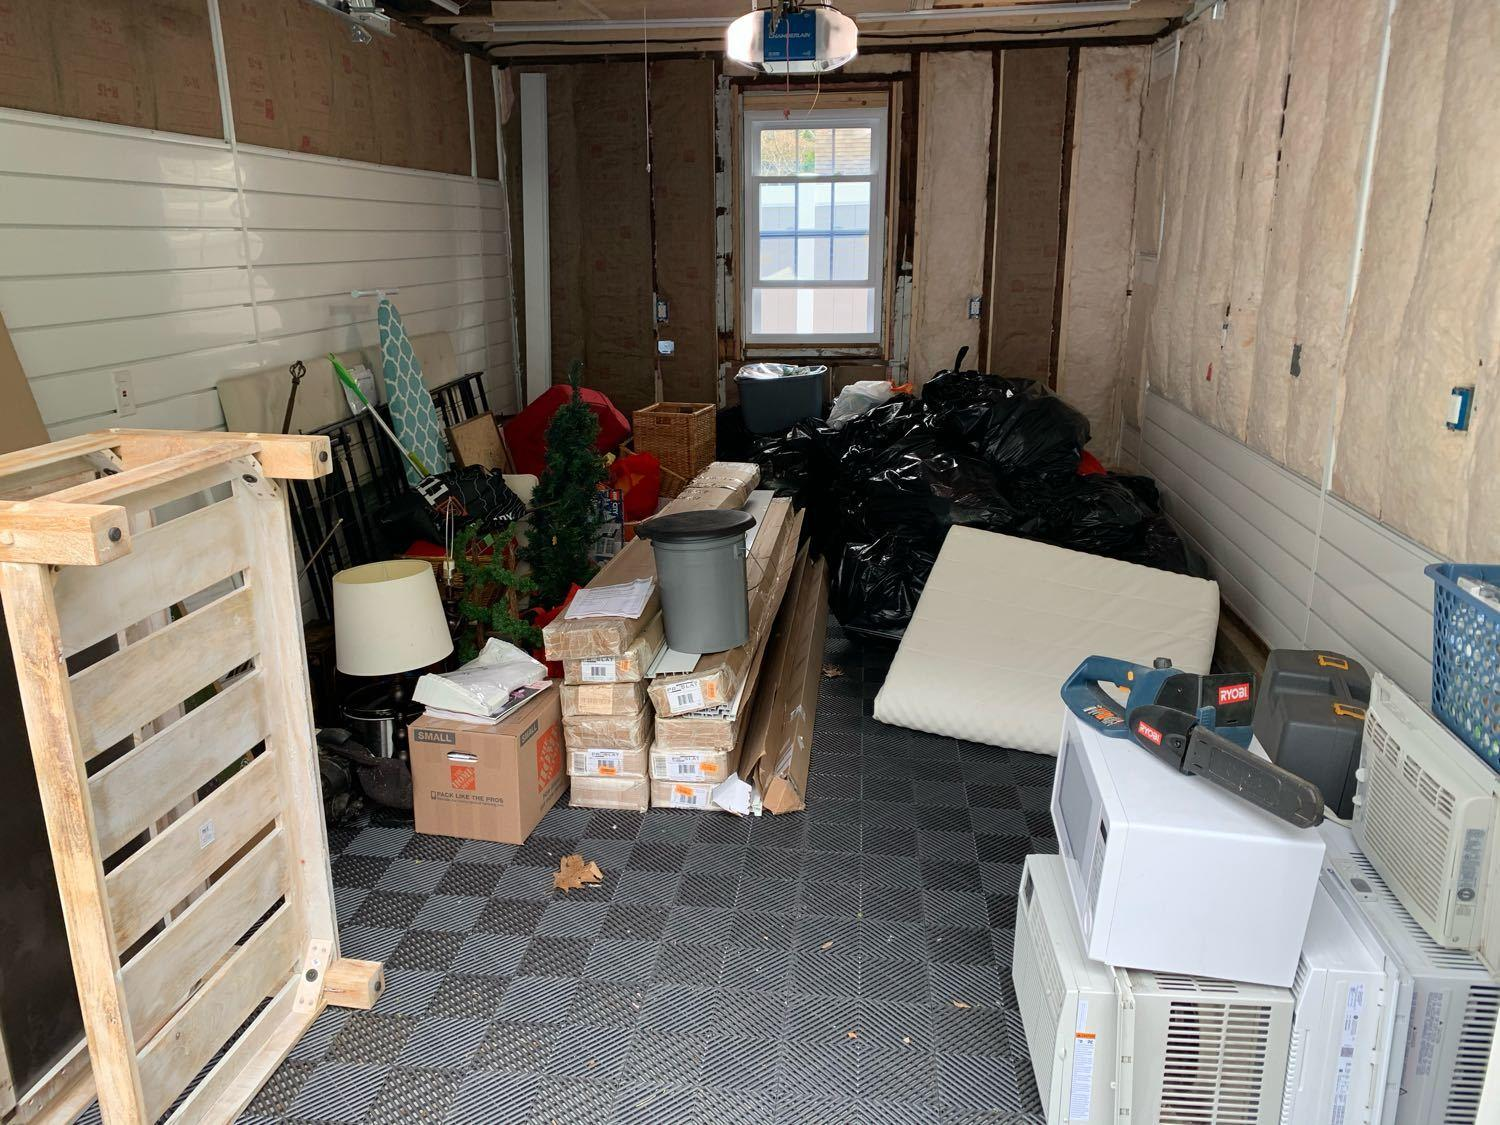 Beverly, MA Junk Removal Service - Before Photo